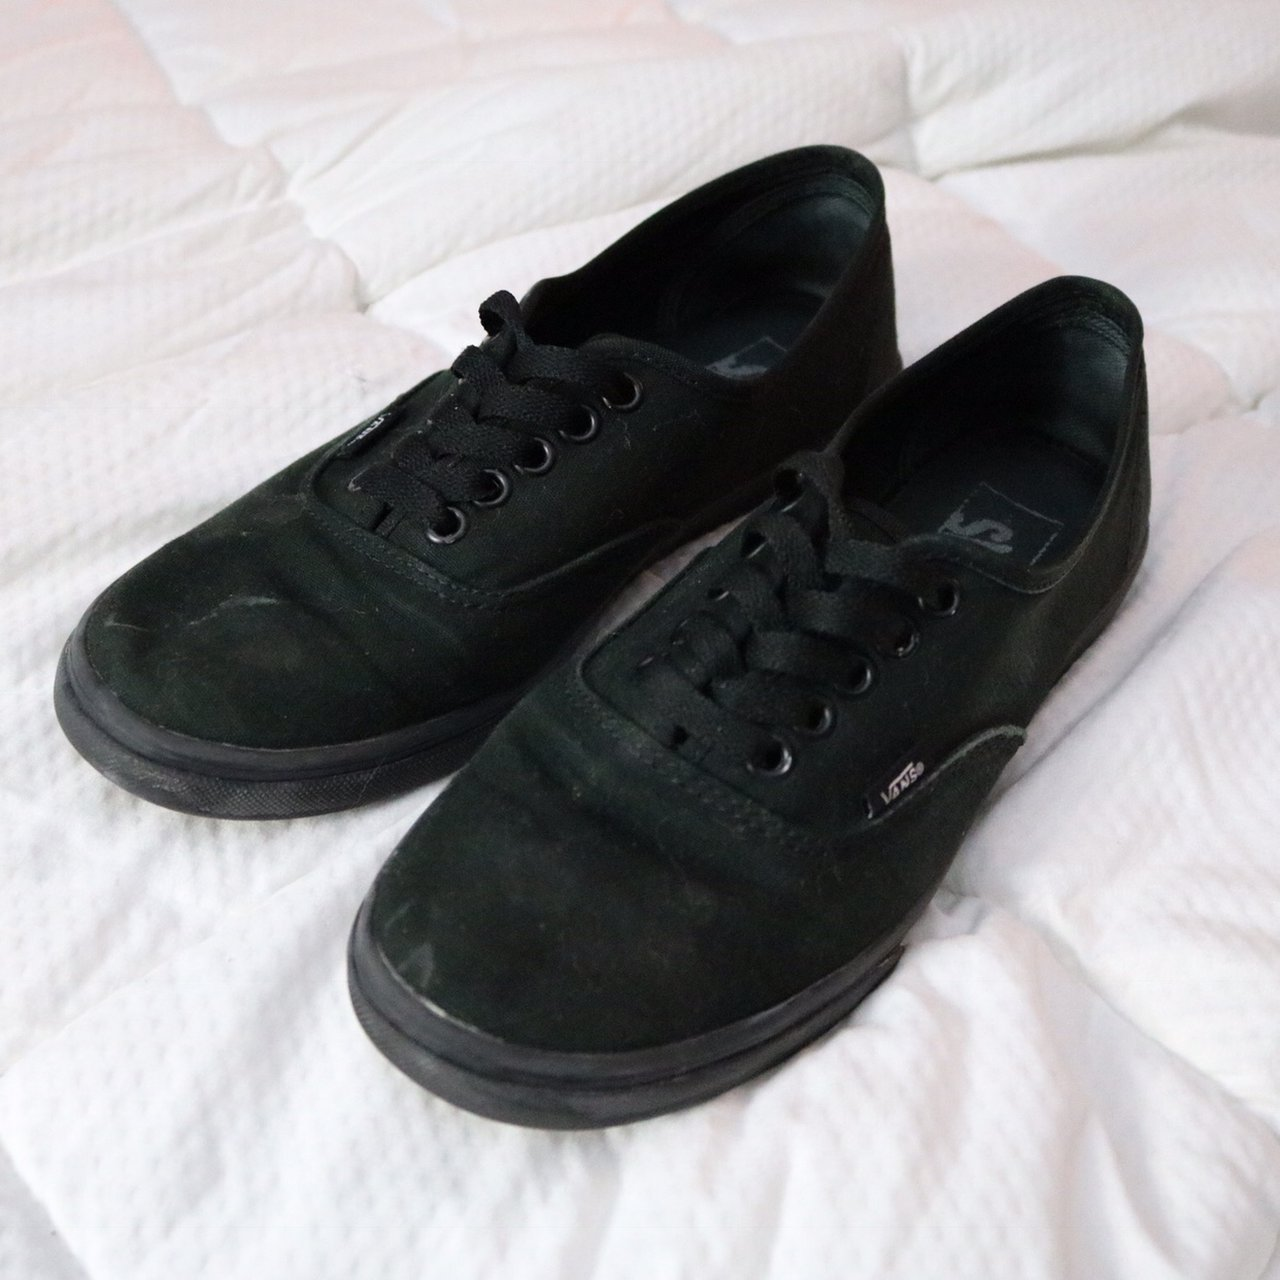 5a159089075215 Authentic Vans all black! These are preloved but have some - Depop